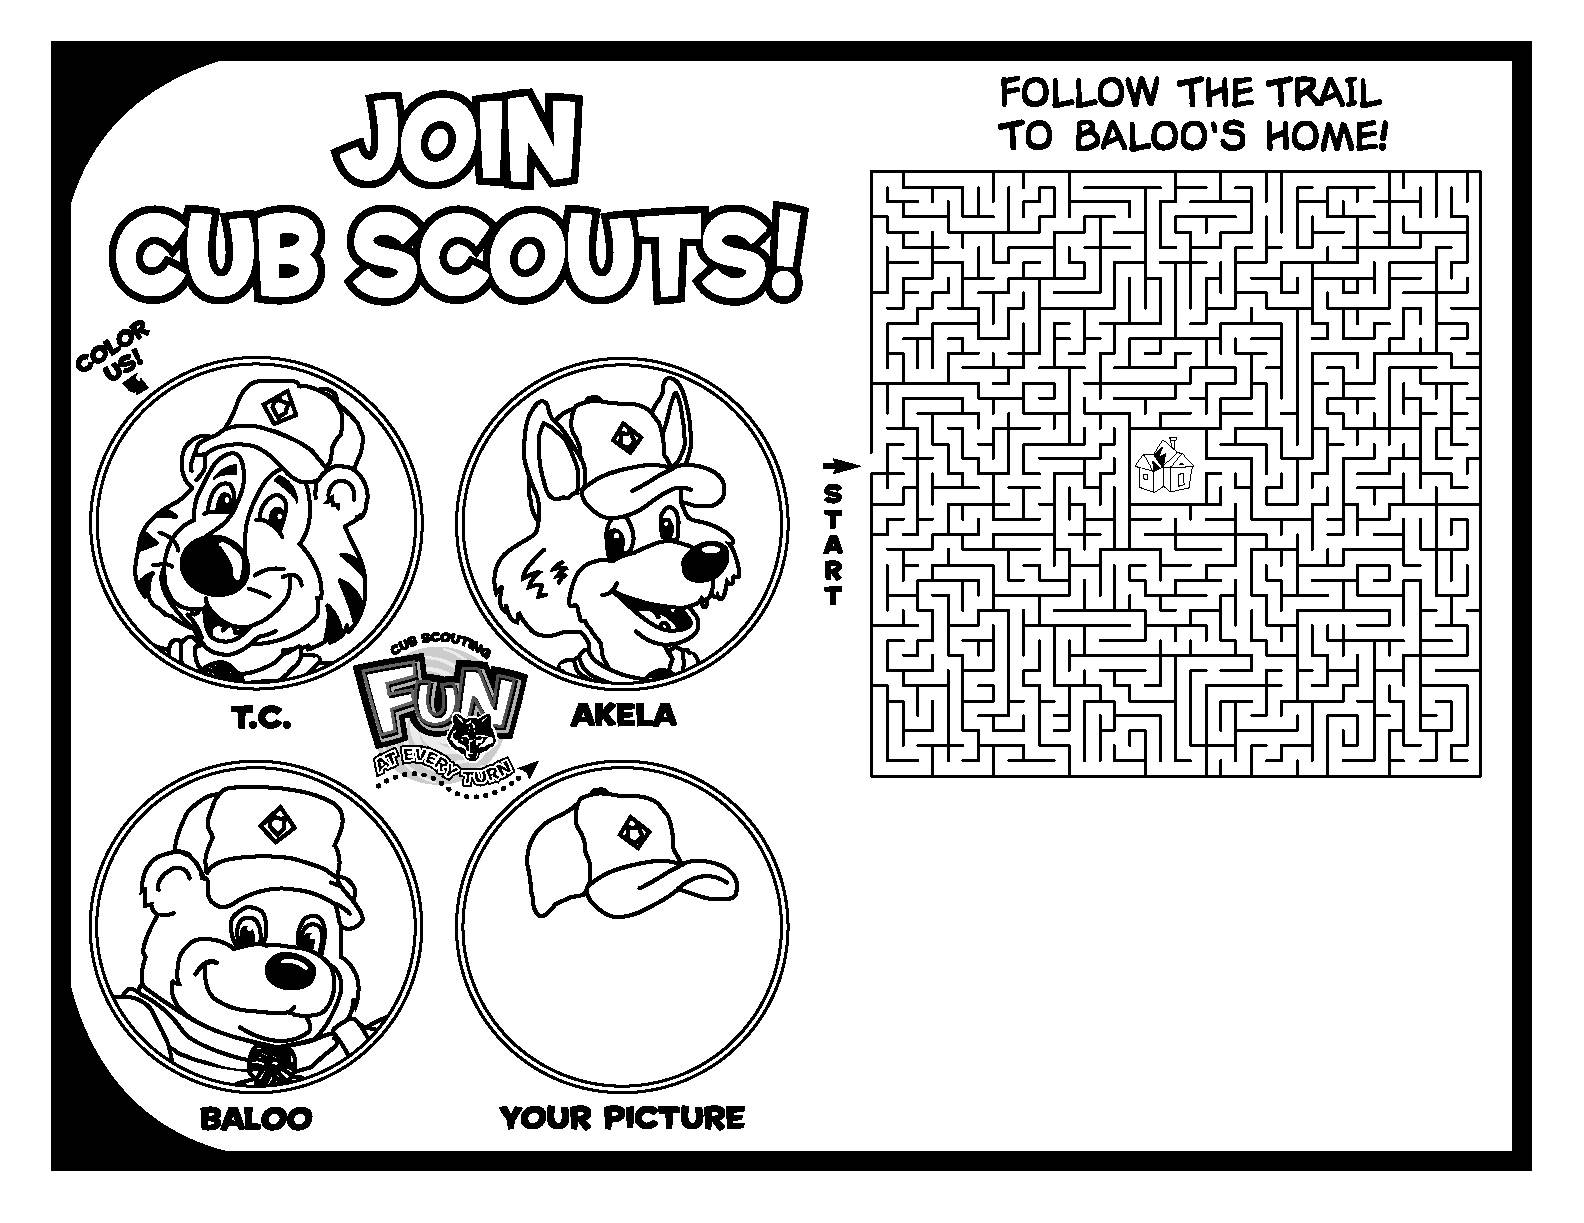 photograph relating to Cub Scout Printable Activities referred to as Printable Coloring Game Webpages Cub Scout Pack 16